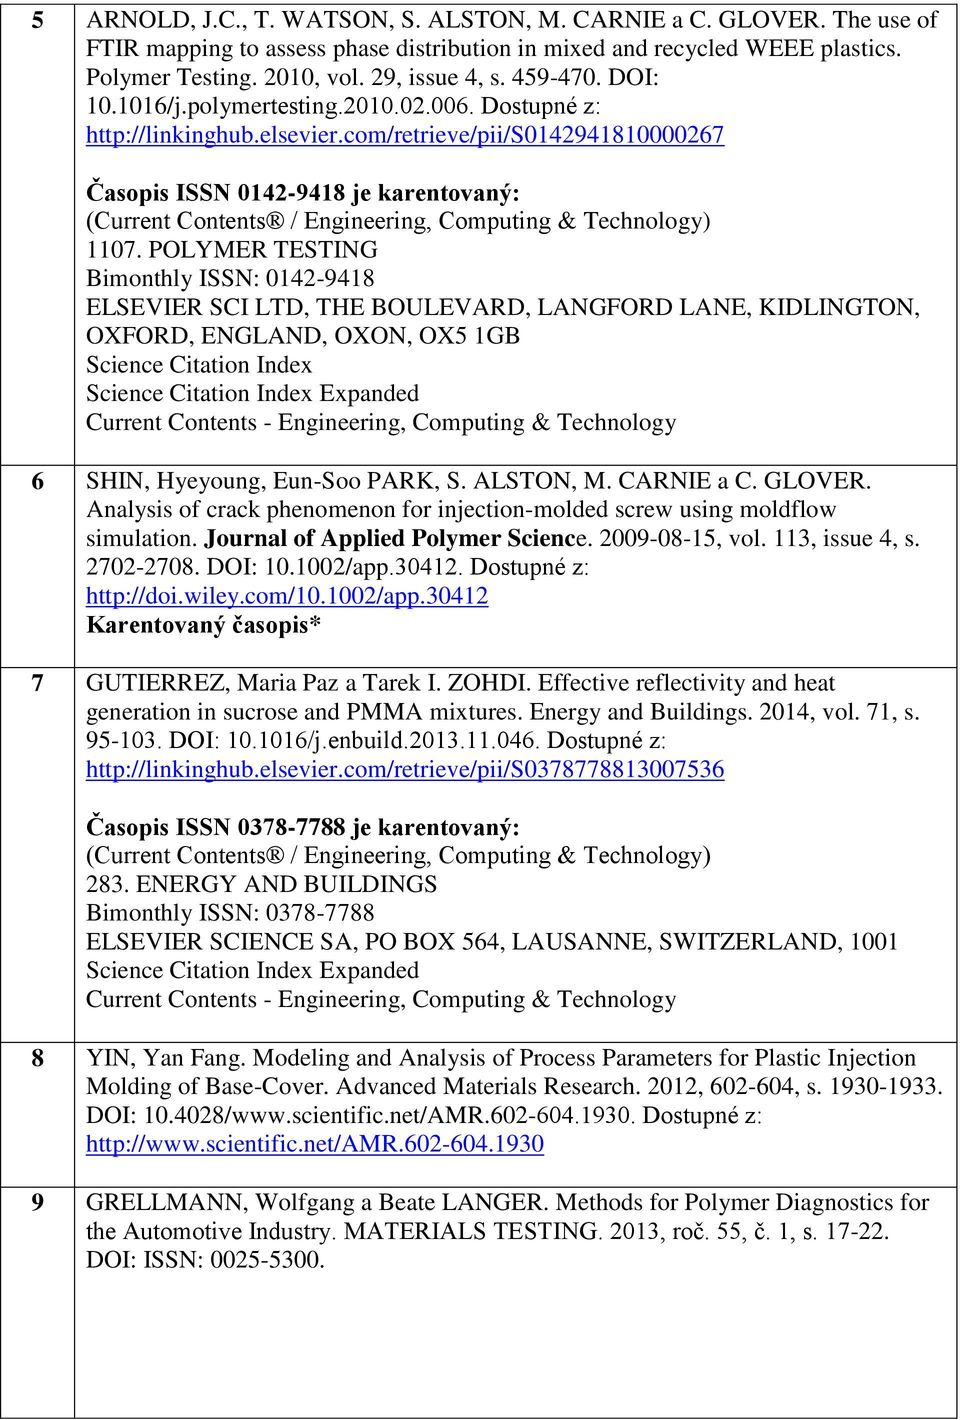 com/retrieve/pii/s0142941810000267 Časopis ISSN 0142-9418 je karentovaný: (Current Contents / Engineering, Computing & Technology) 1107.